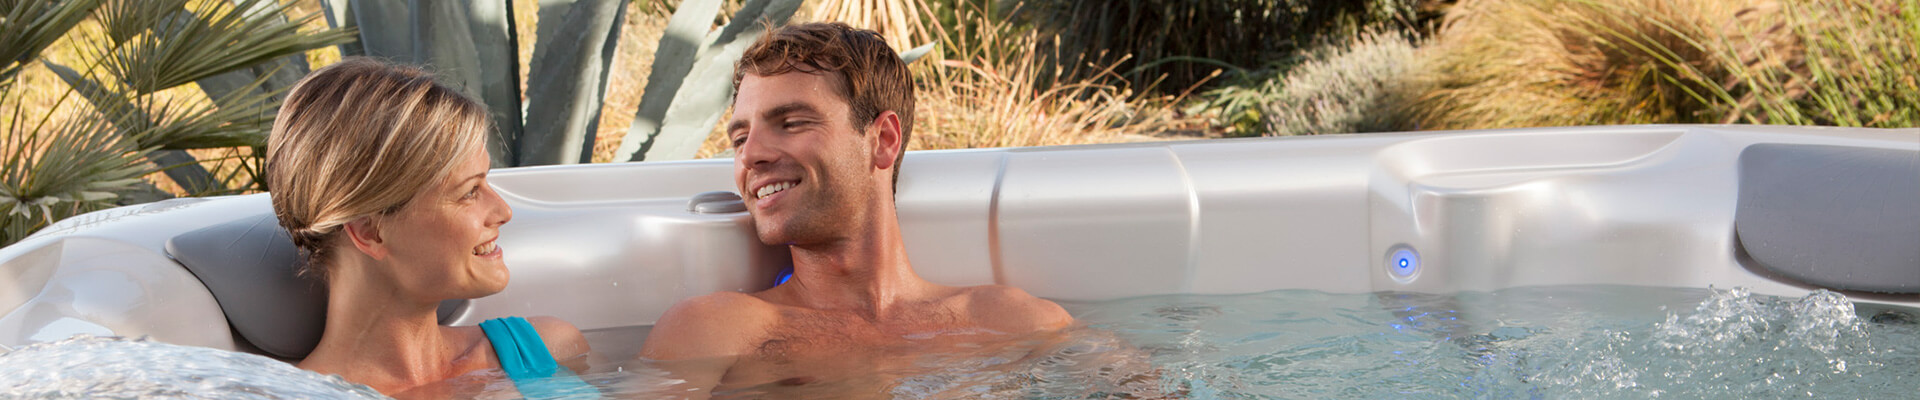 3 Ways a Hot Tub Can Improve Your Relationships, Used Spas O'Fallon